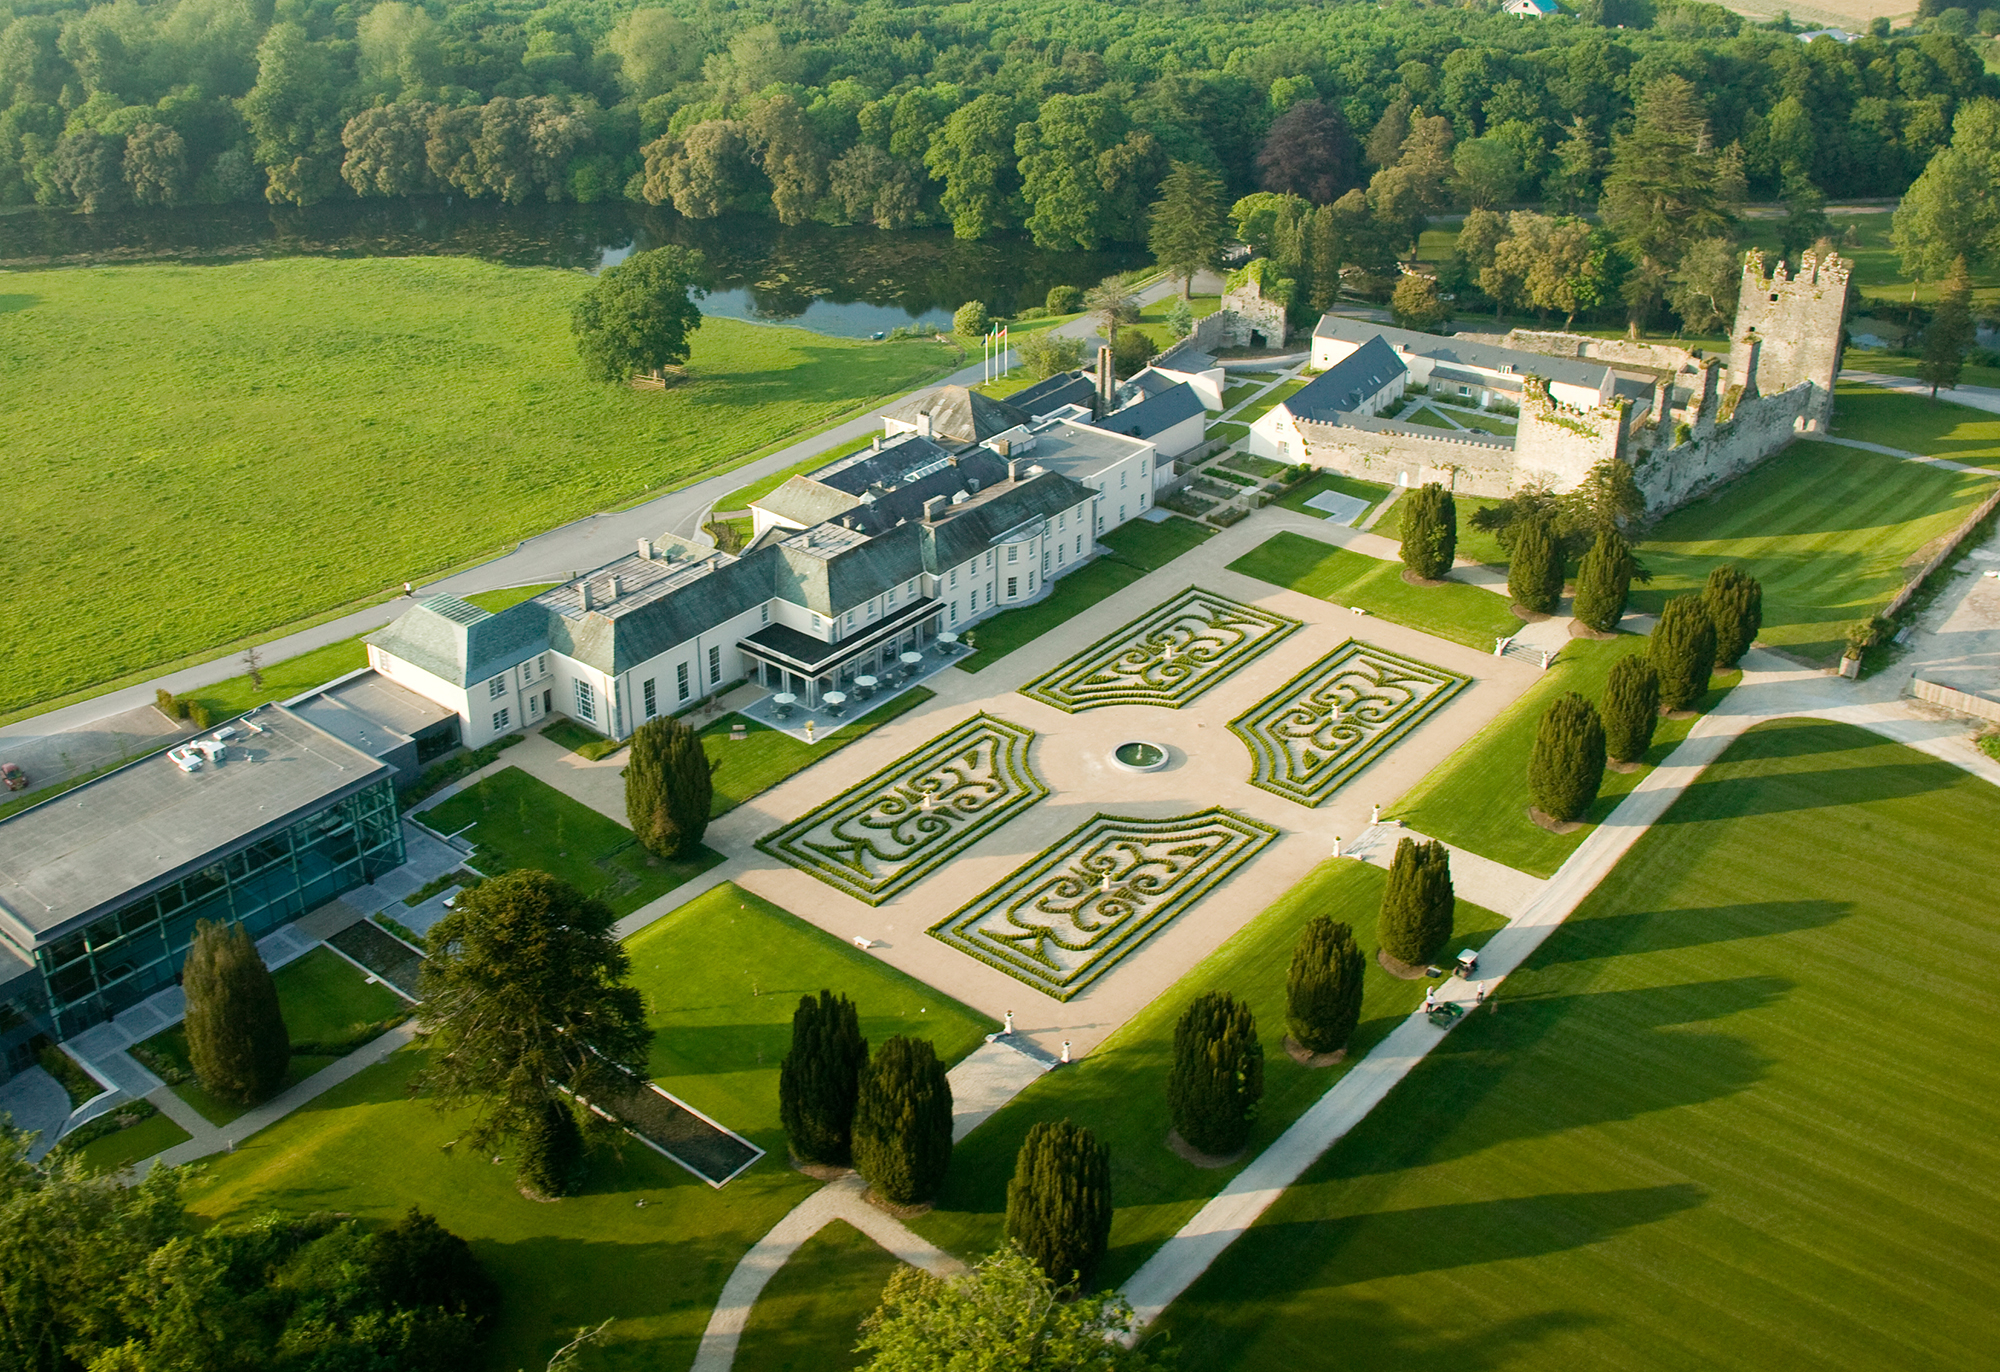 www.ringofcork.ie | Ring of Cork | Castlemartyr Resort